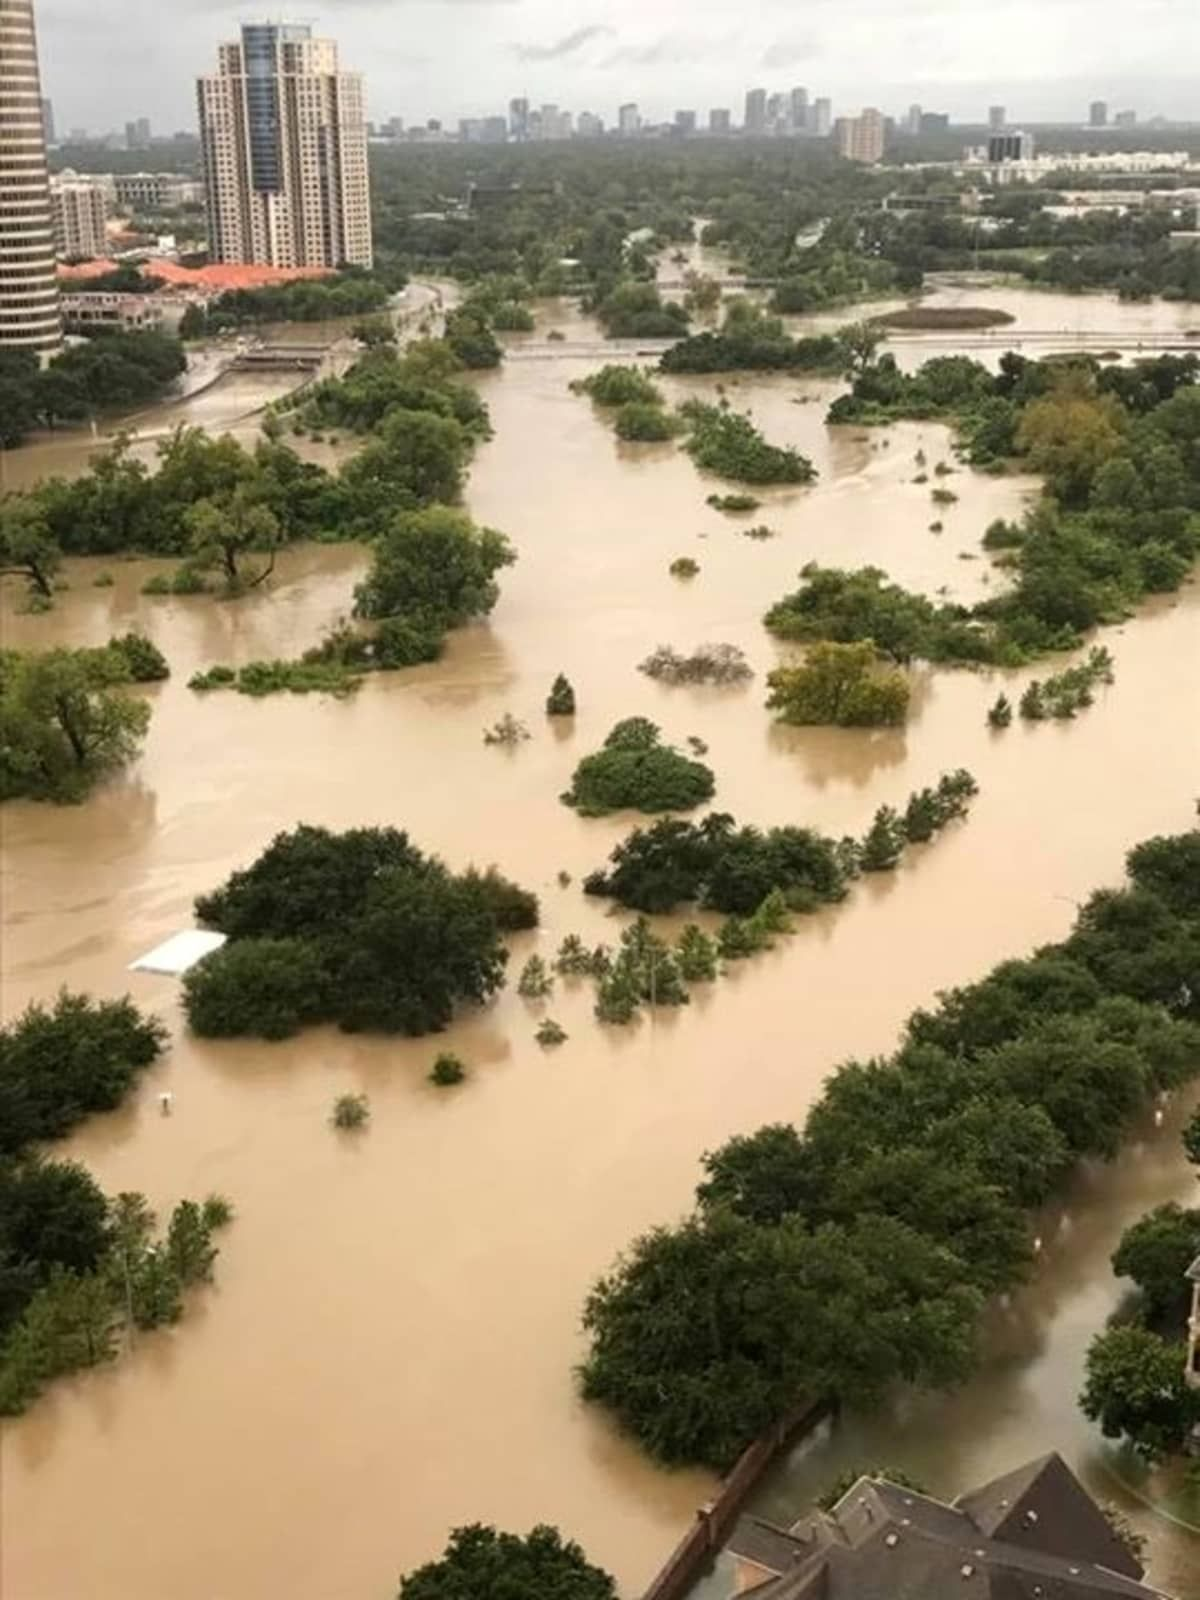 Houston Hurricane Harvey Flood Photos Allen Parkway Houston Flooding Photo Nature Photography